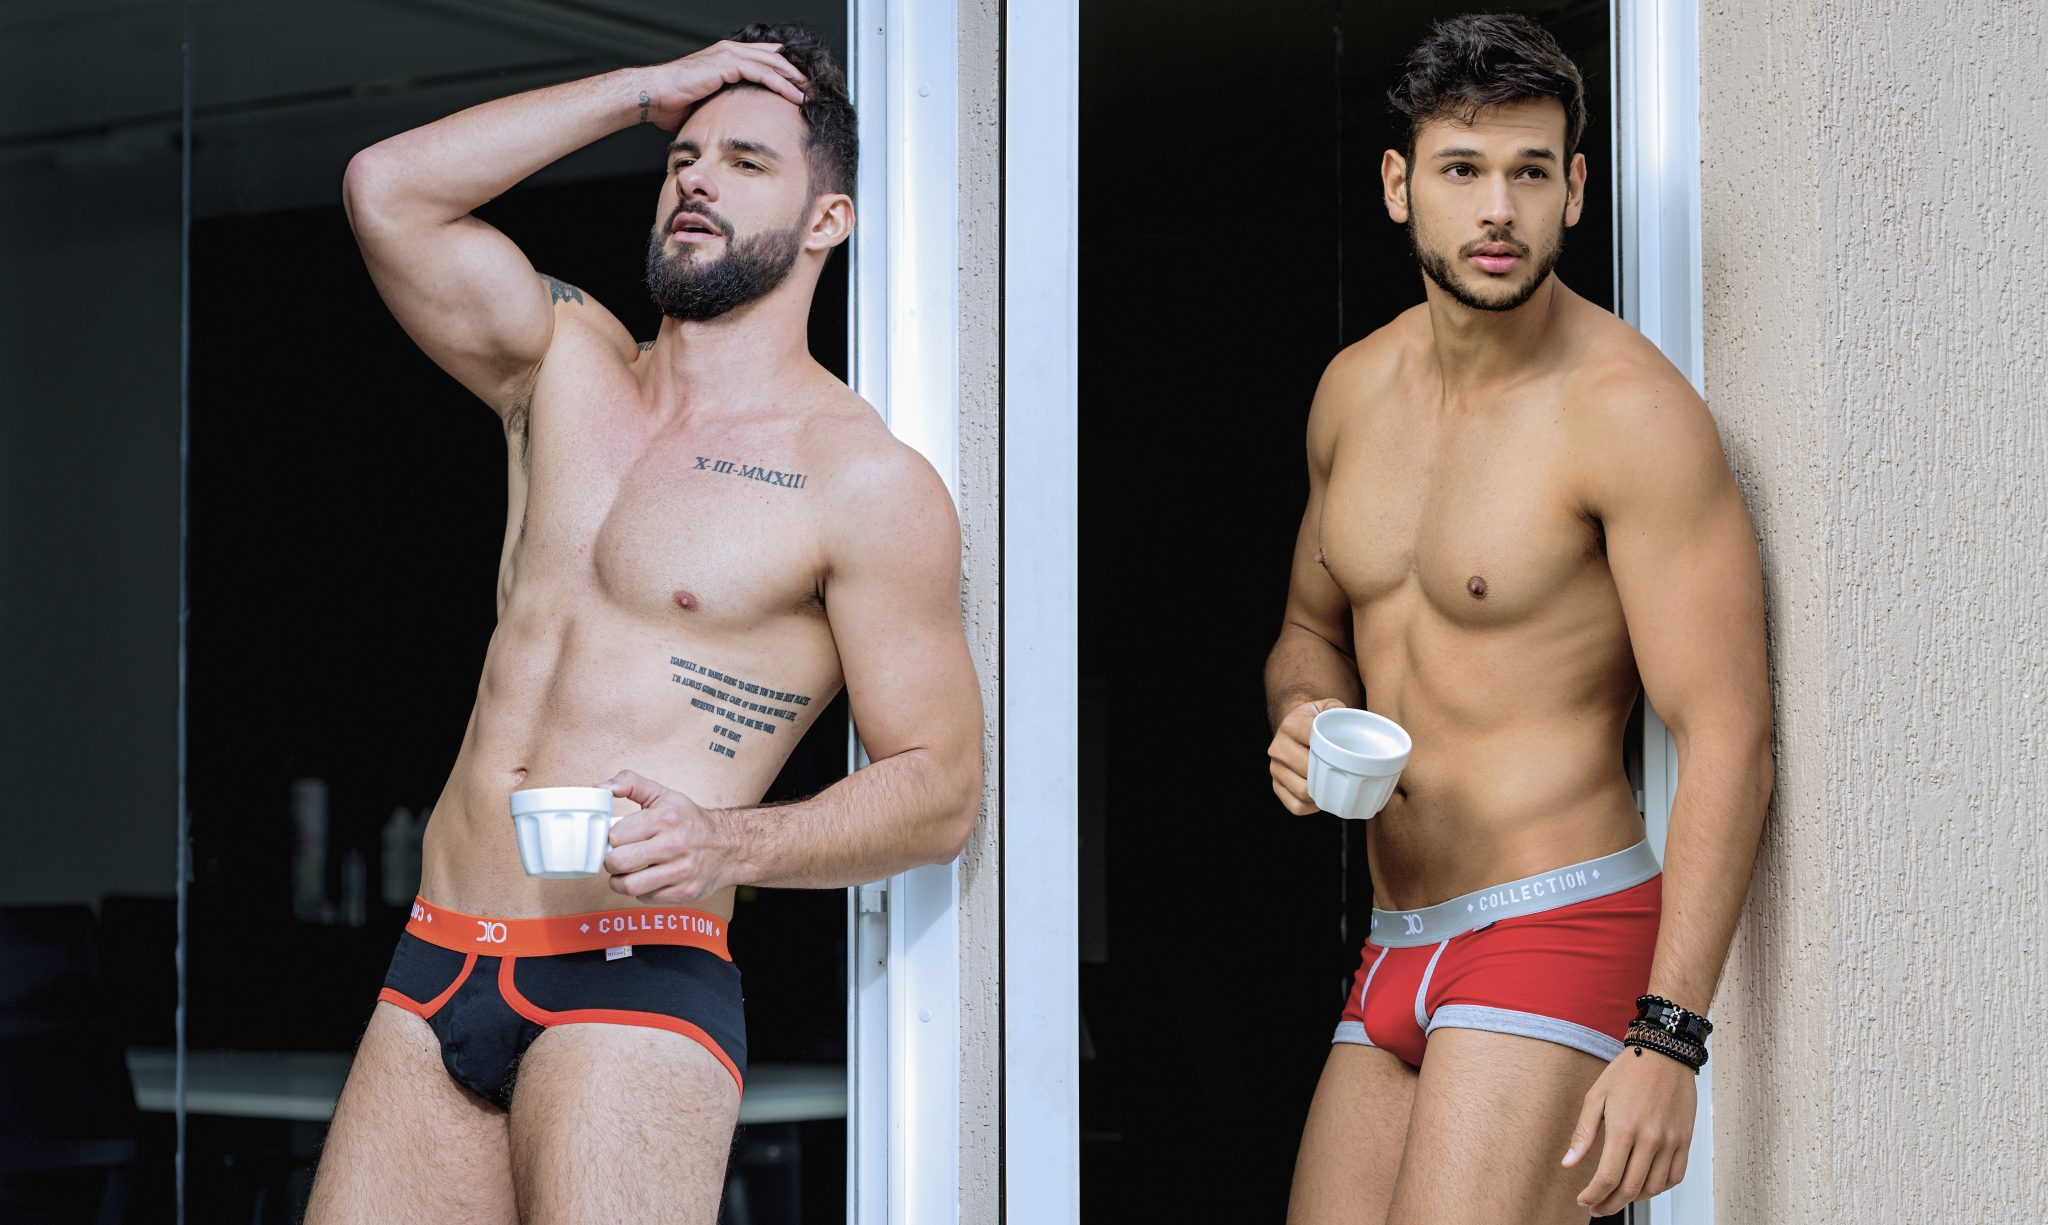 Bruno Rocha and Victor Dos Santos by Ronaldo Gutierrez for Brazilian Male Model